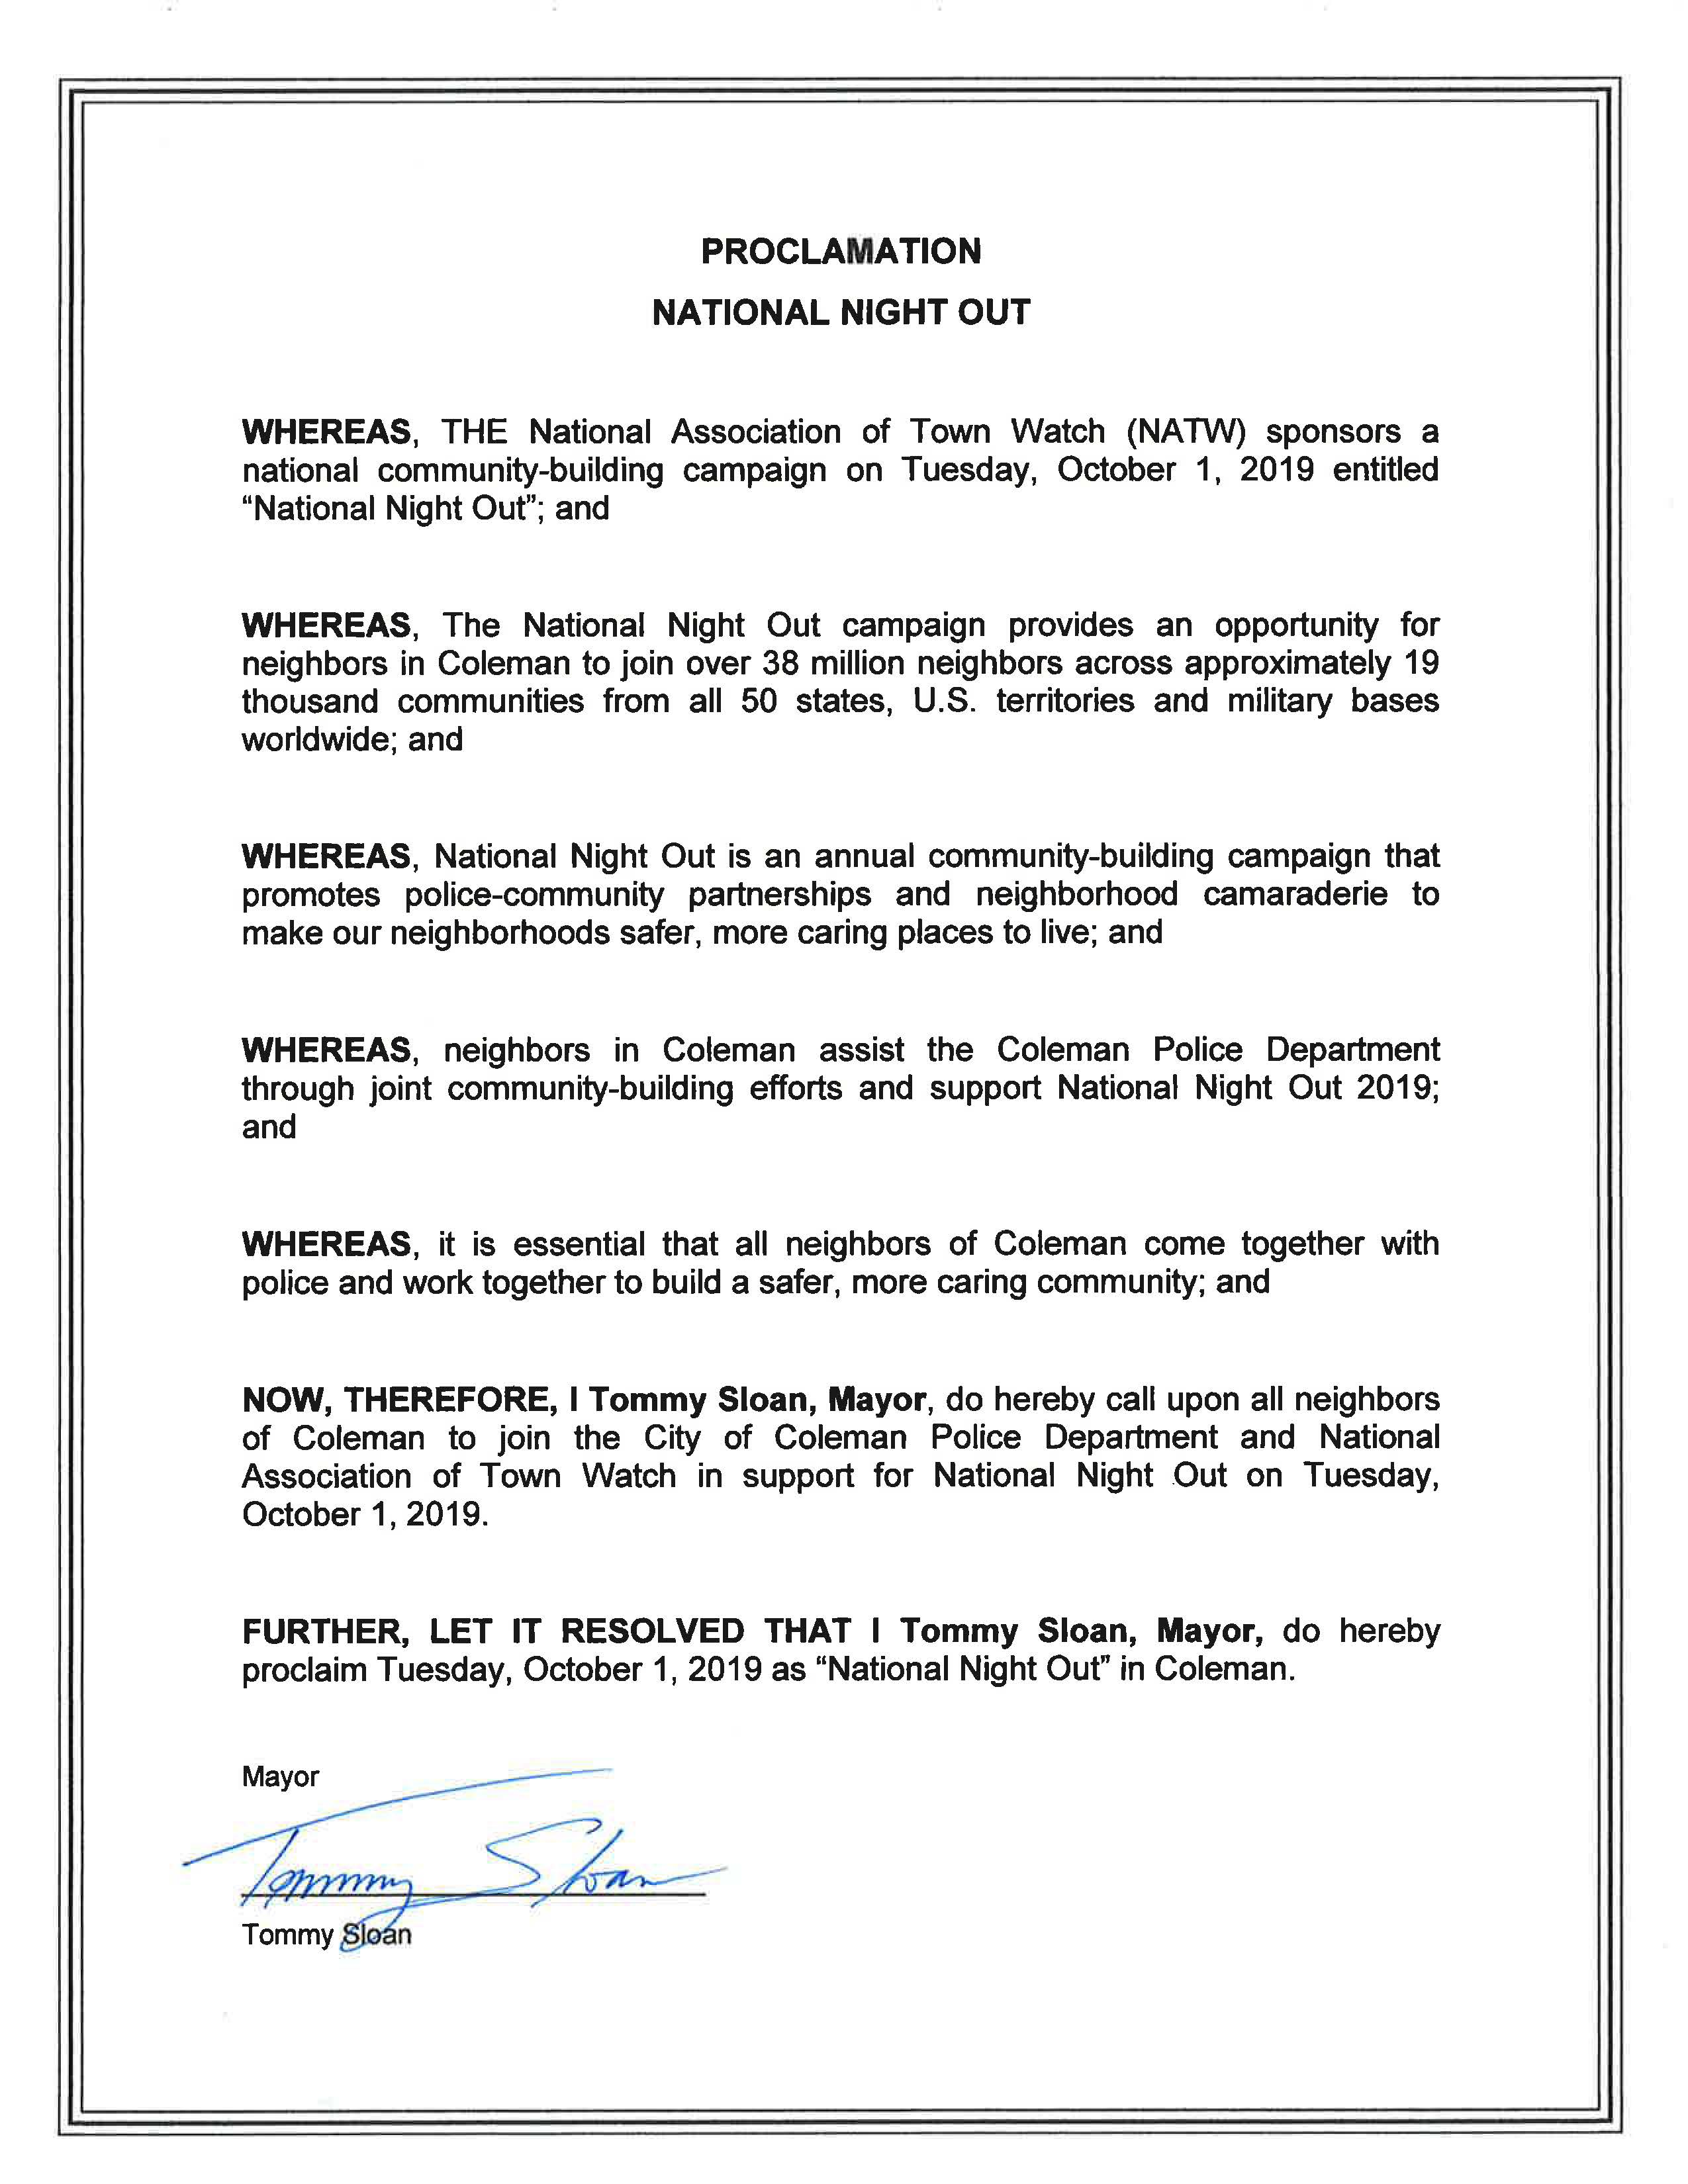 National Night Out Proclamation